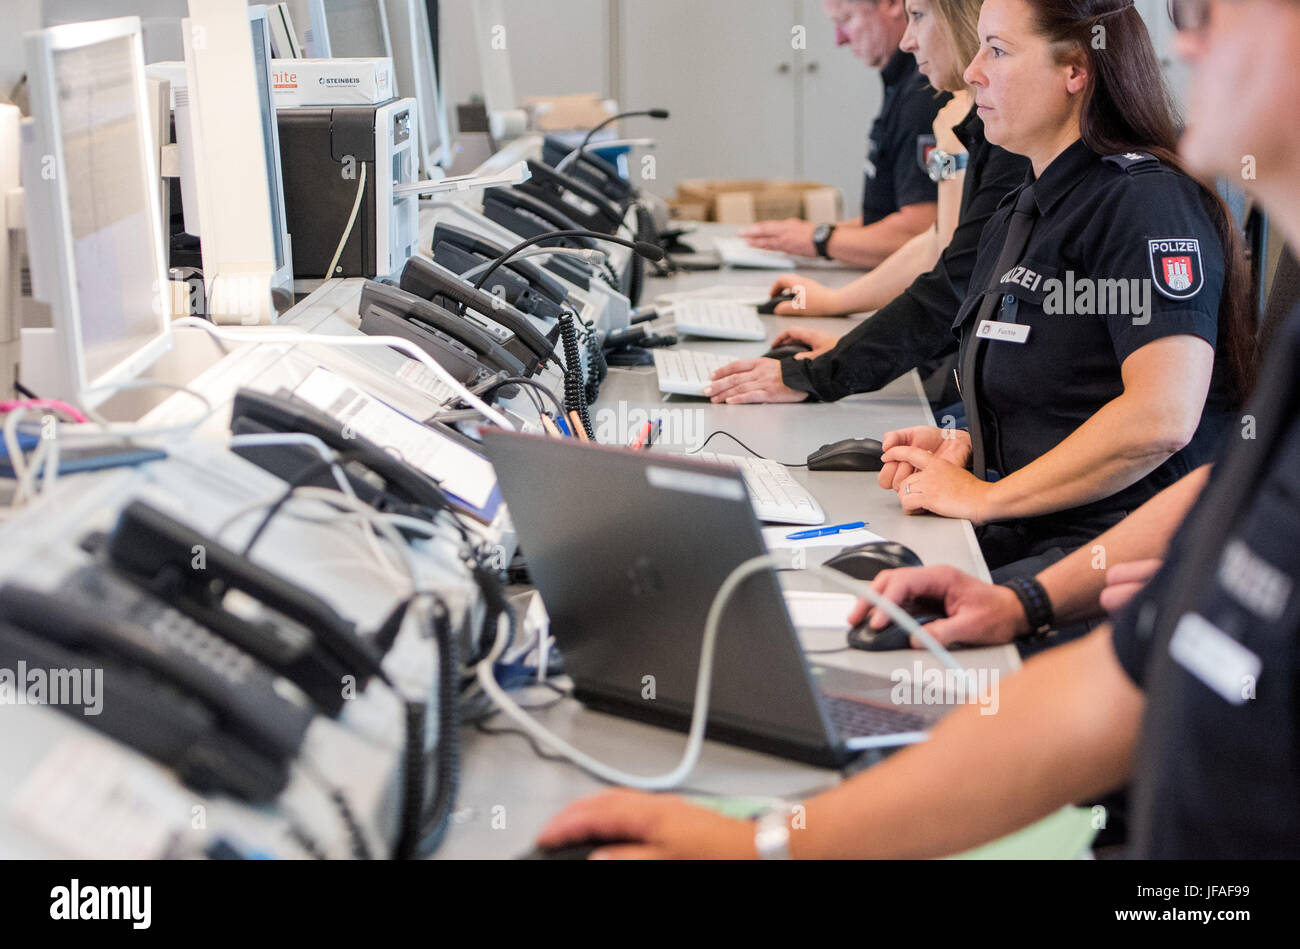 Hamburg, Germany. 30th June, 2017. dpatop - Officers of the police sit at the G20 command center in Hamburg, Germany, - Stock Image